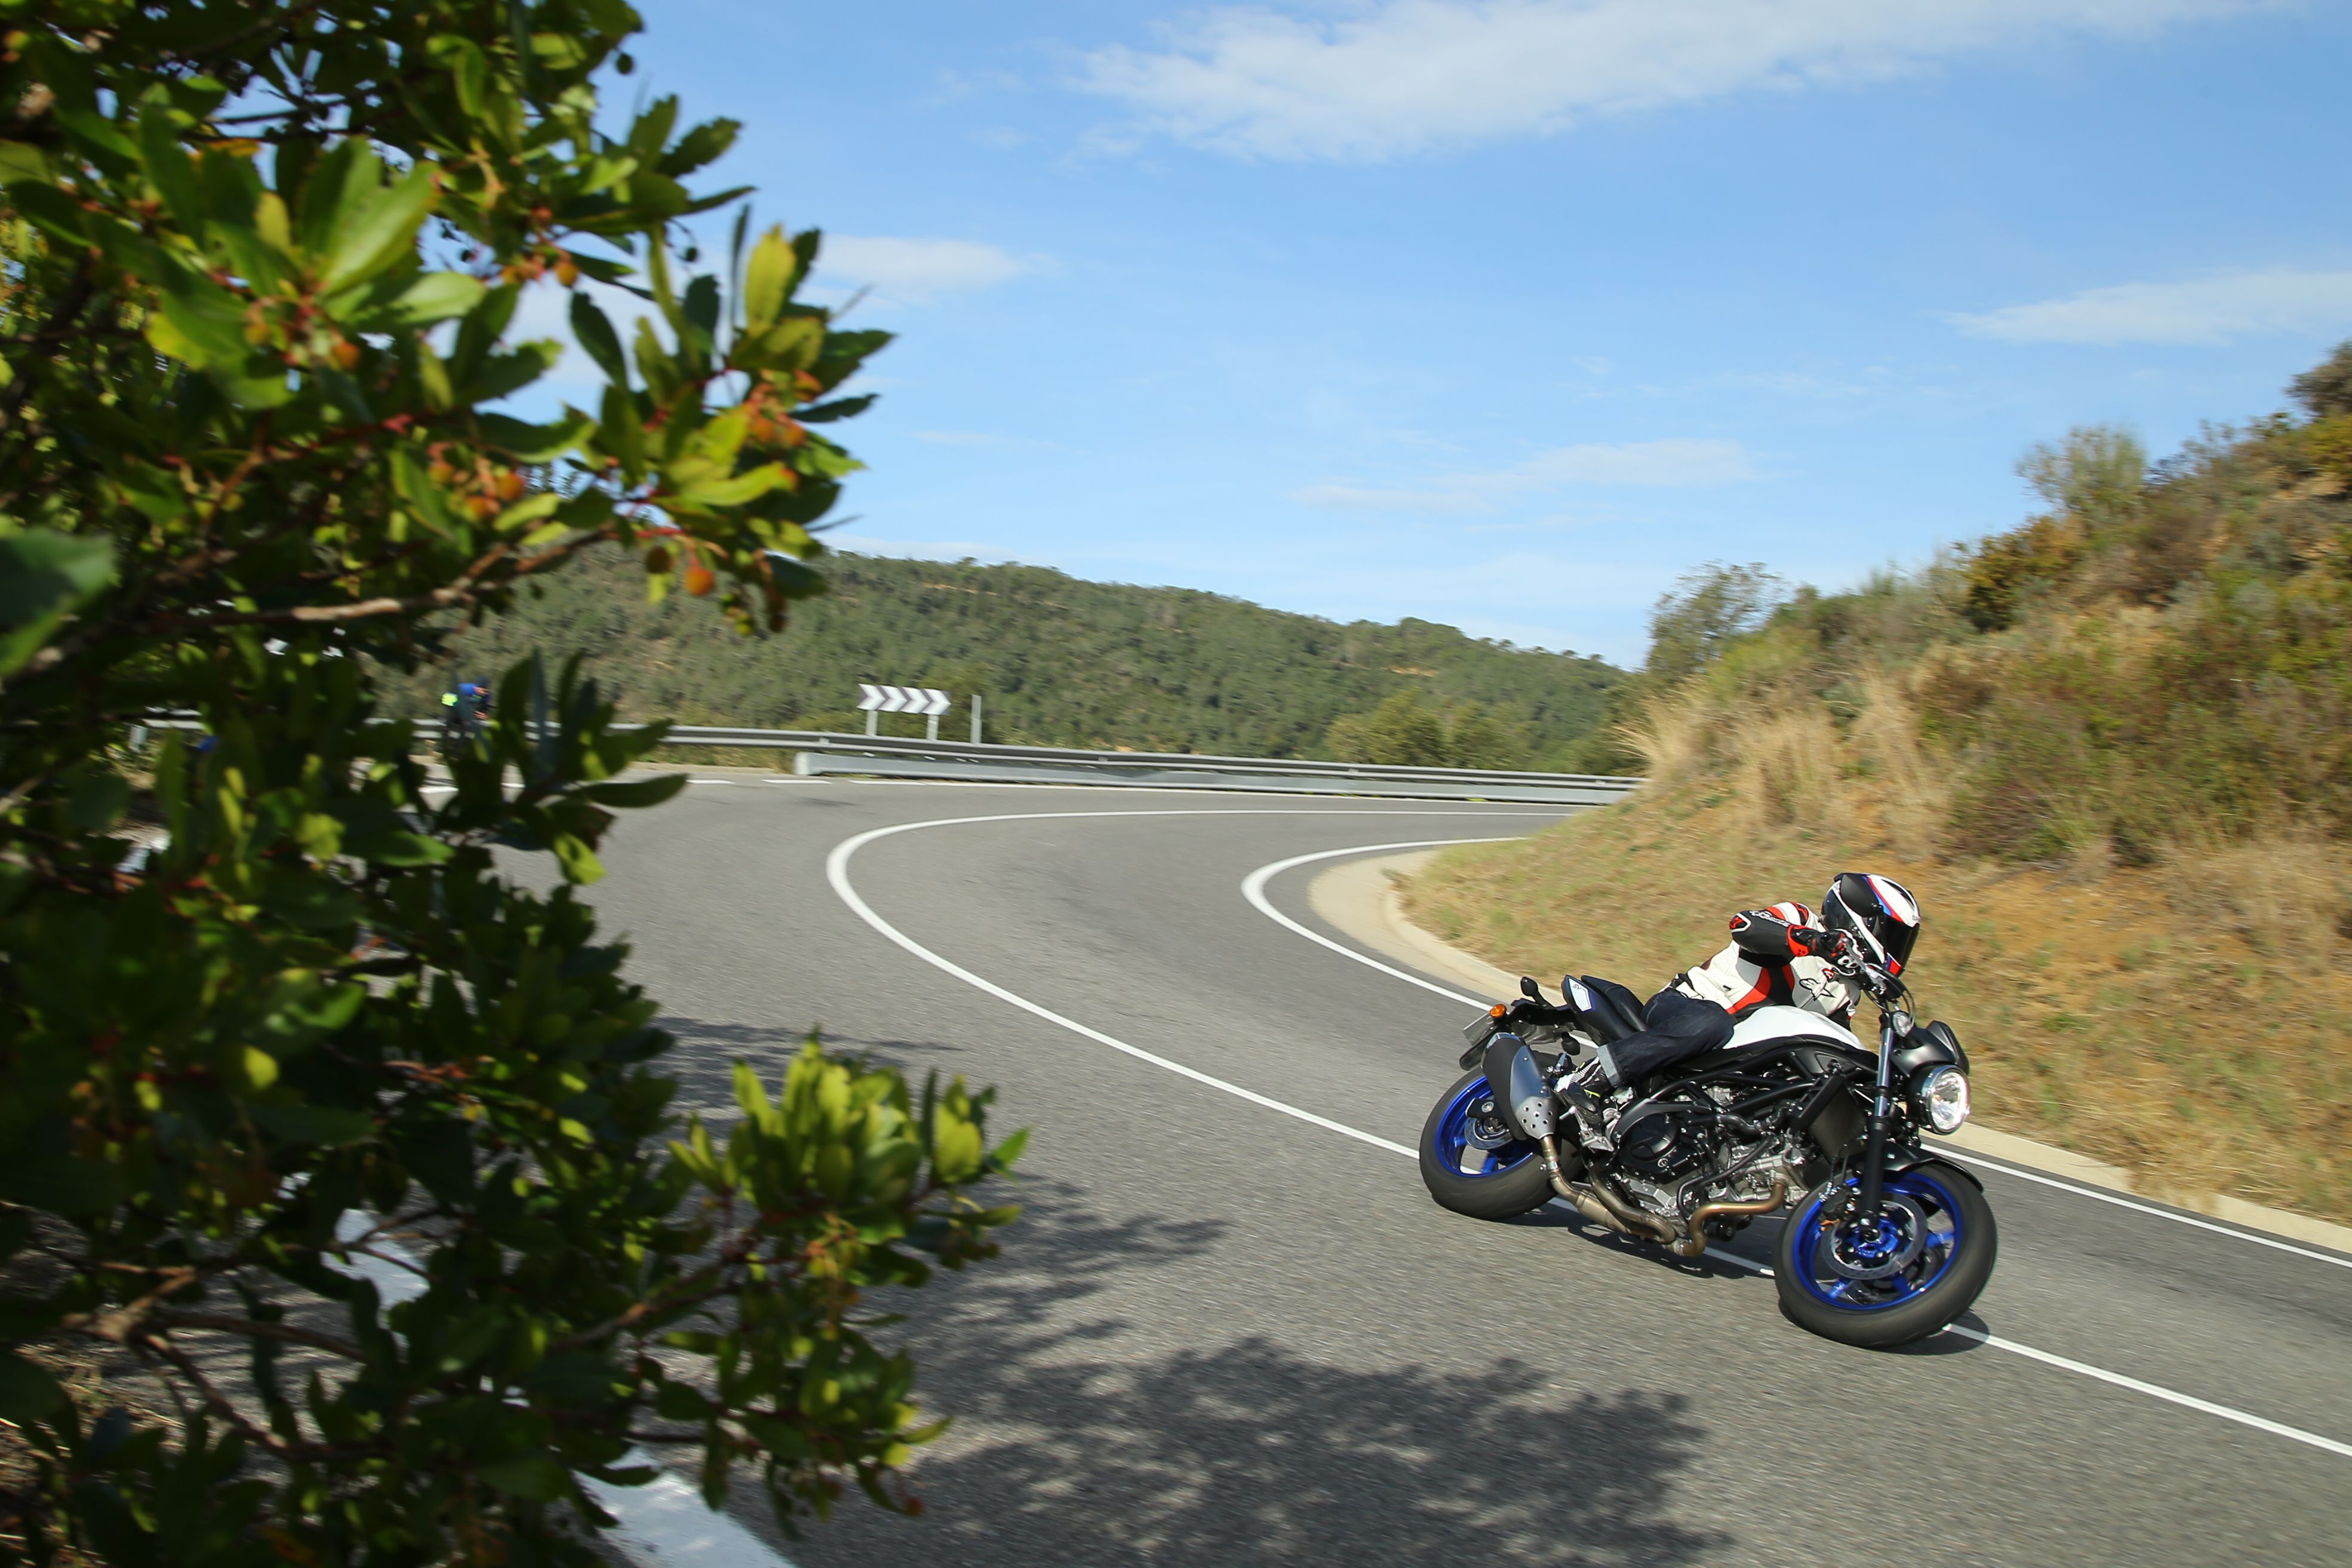 Suzuki SV650 in Spain